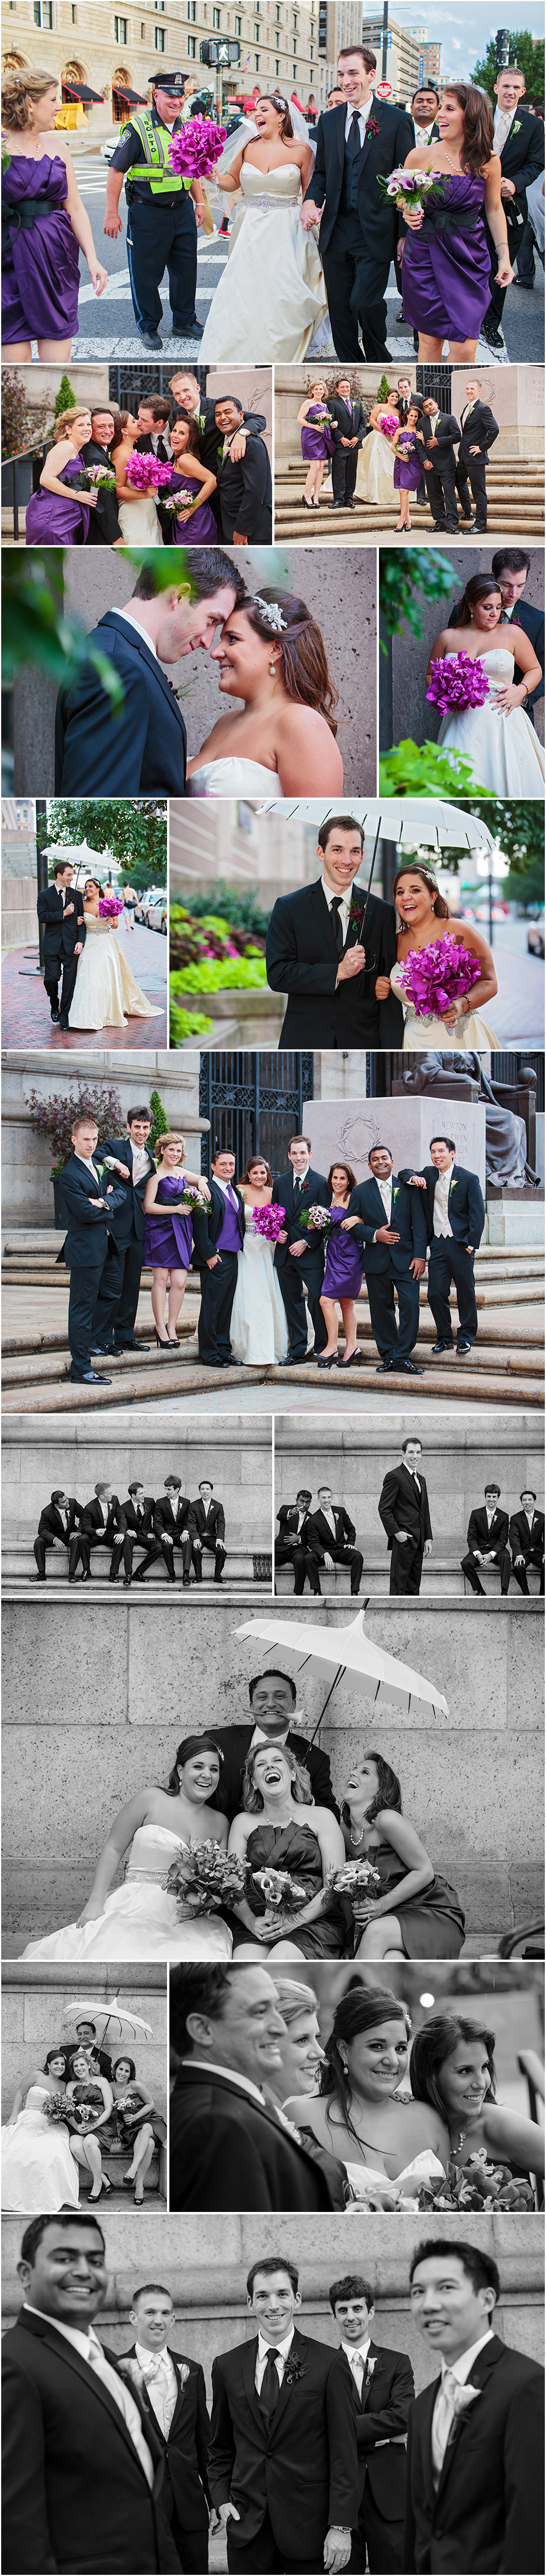 BOSTON WEDDING PHOTOGRAPHER ROBERTO FARREN